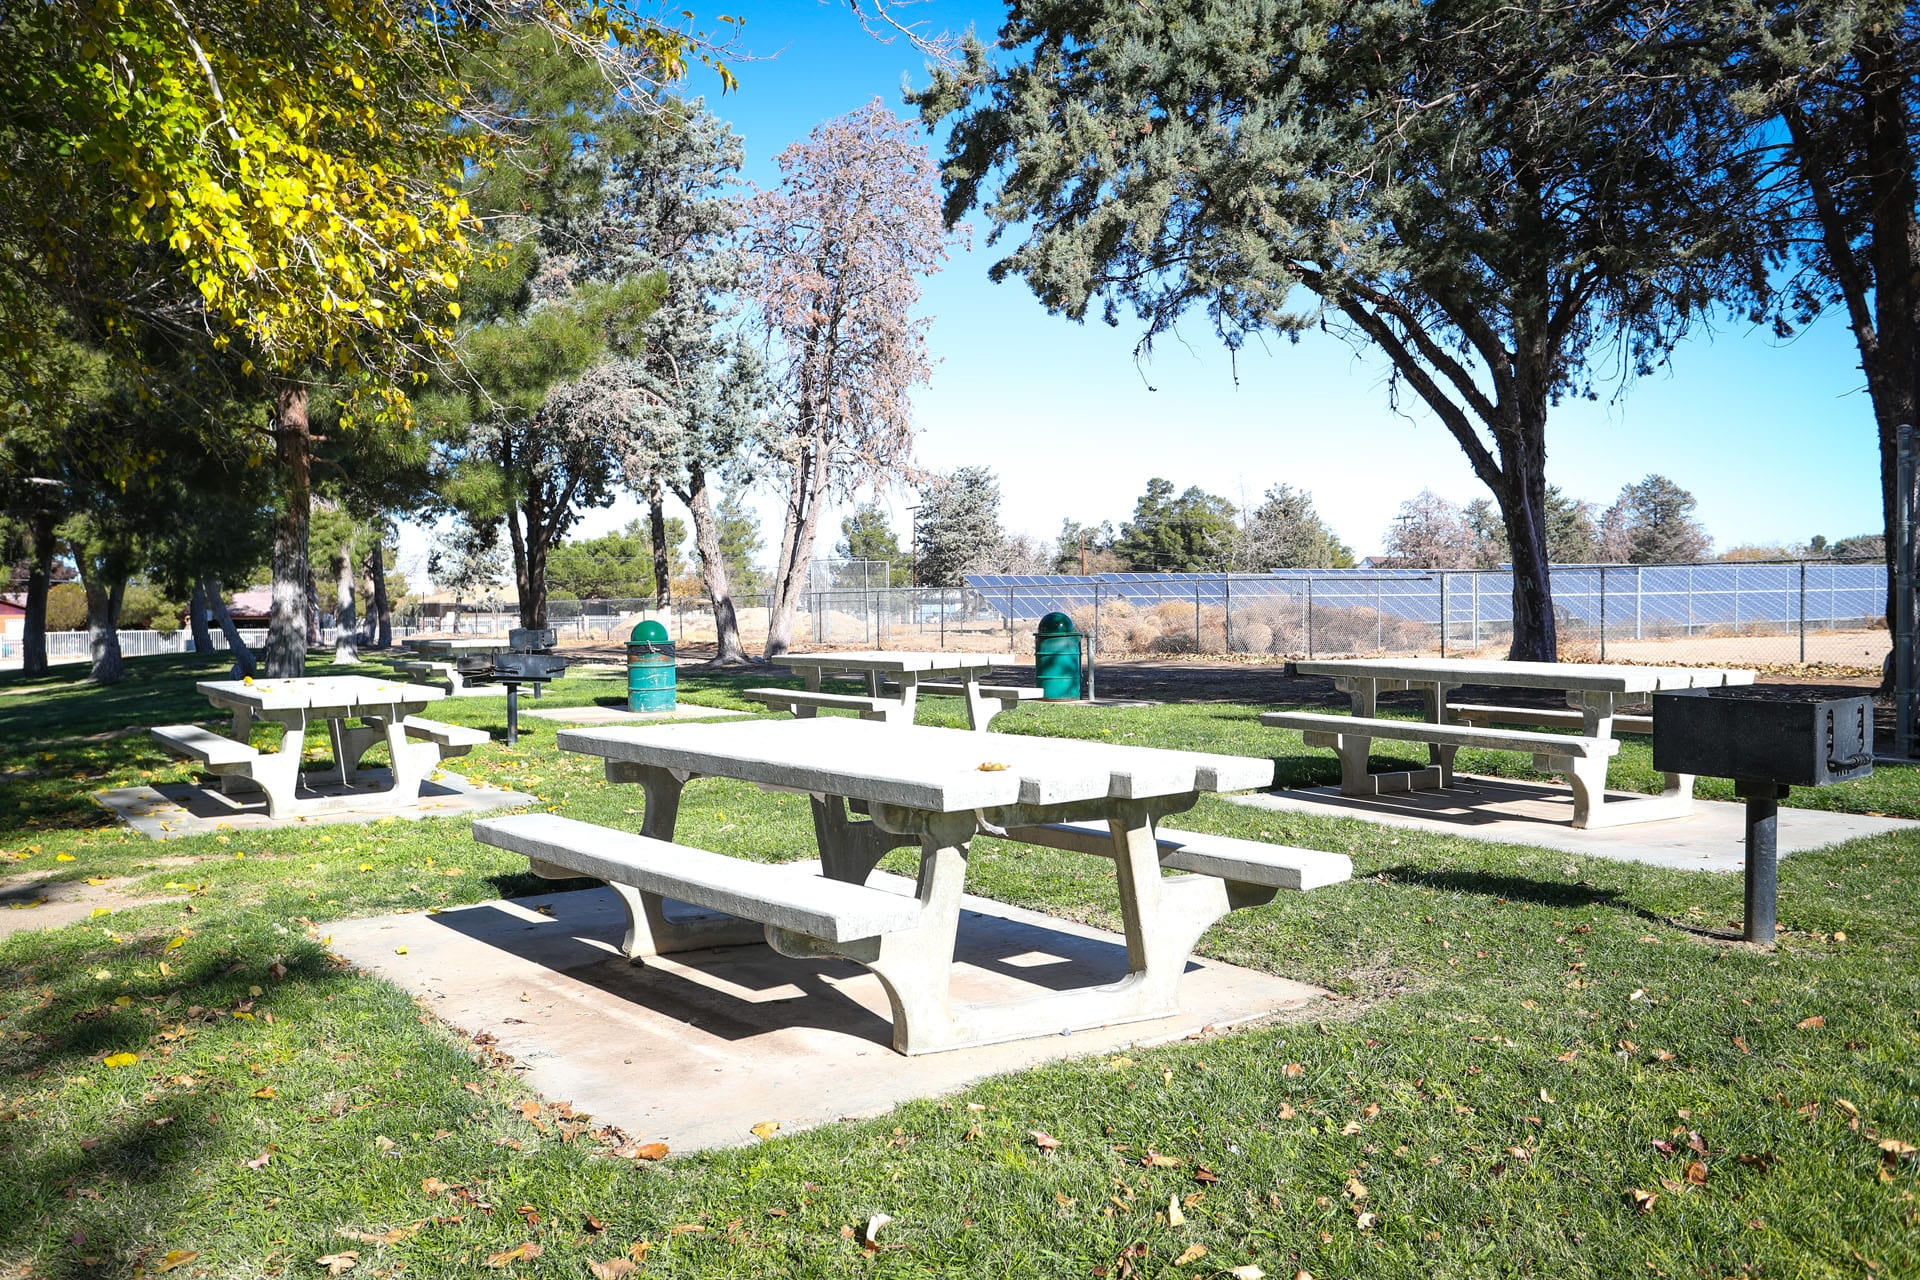 Picnic tables and trash cans in the park